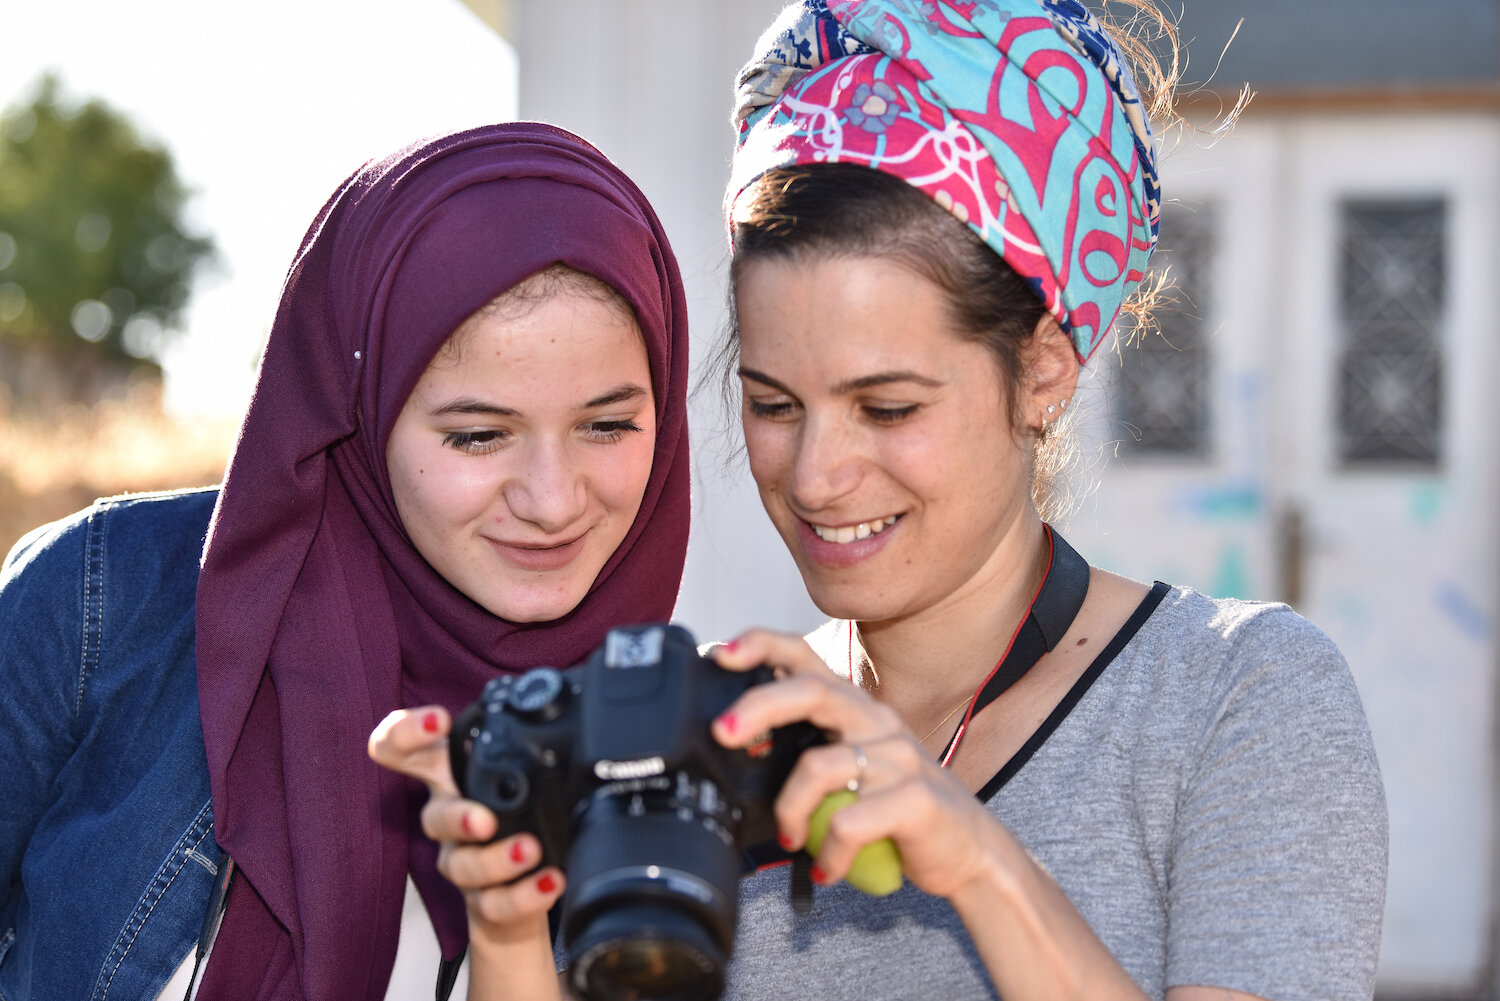 saskia-keeley-photography-humanitarian-photojournalism-documentarian-israel-and-palestine-peace-beyond-sides-towards-reconciliation-roots-non-violence-workshops-DSC_4258.jpg